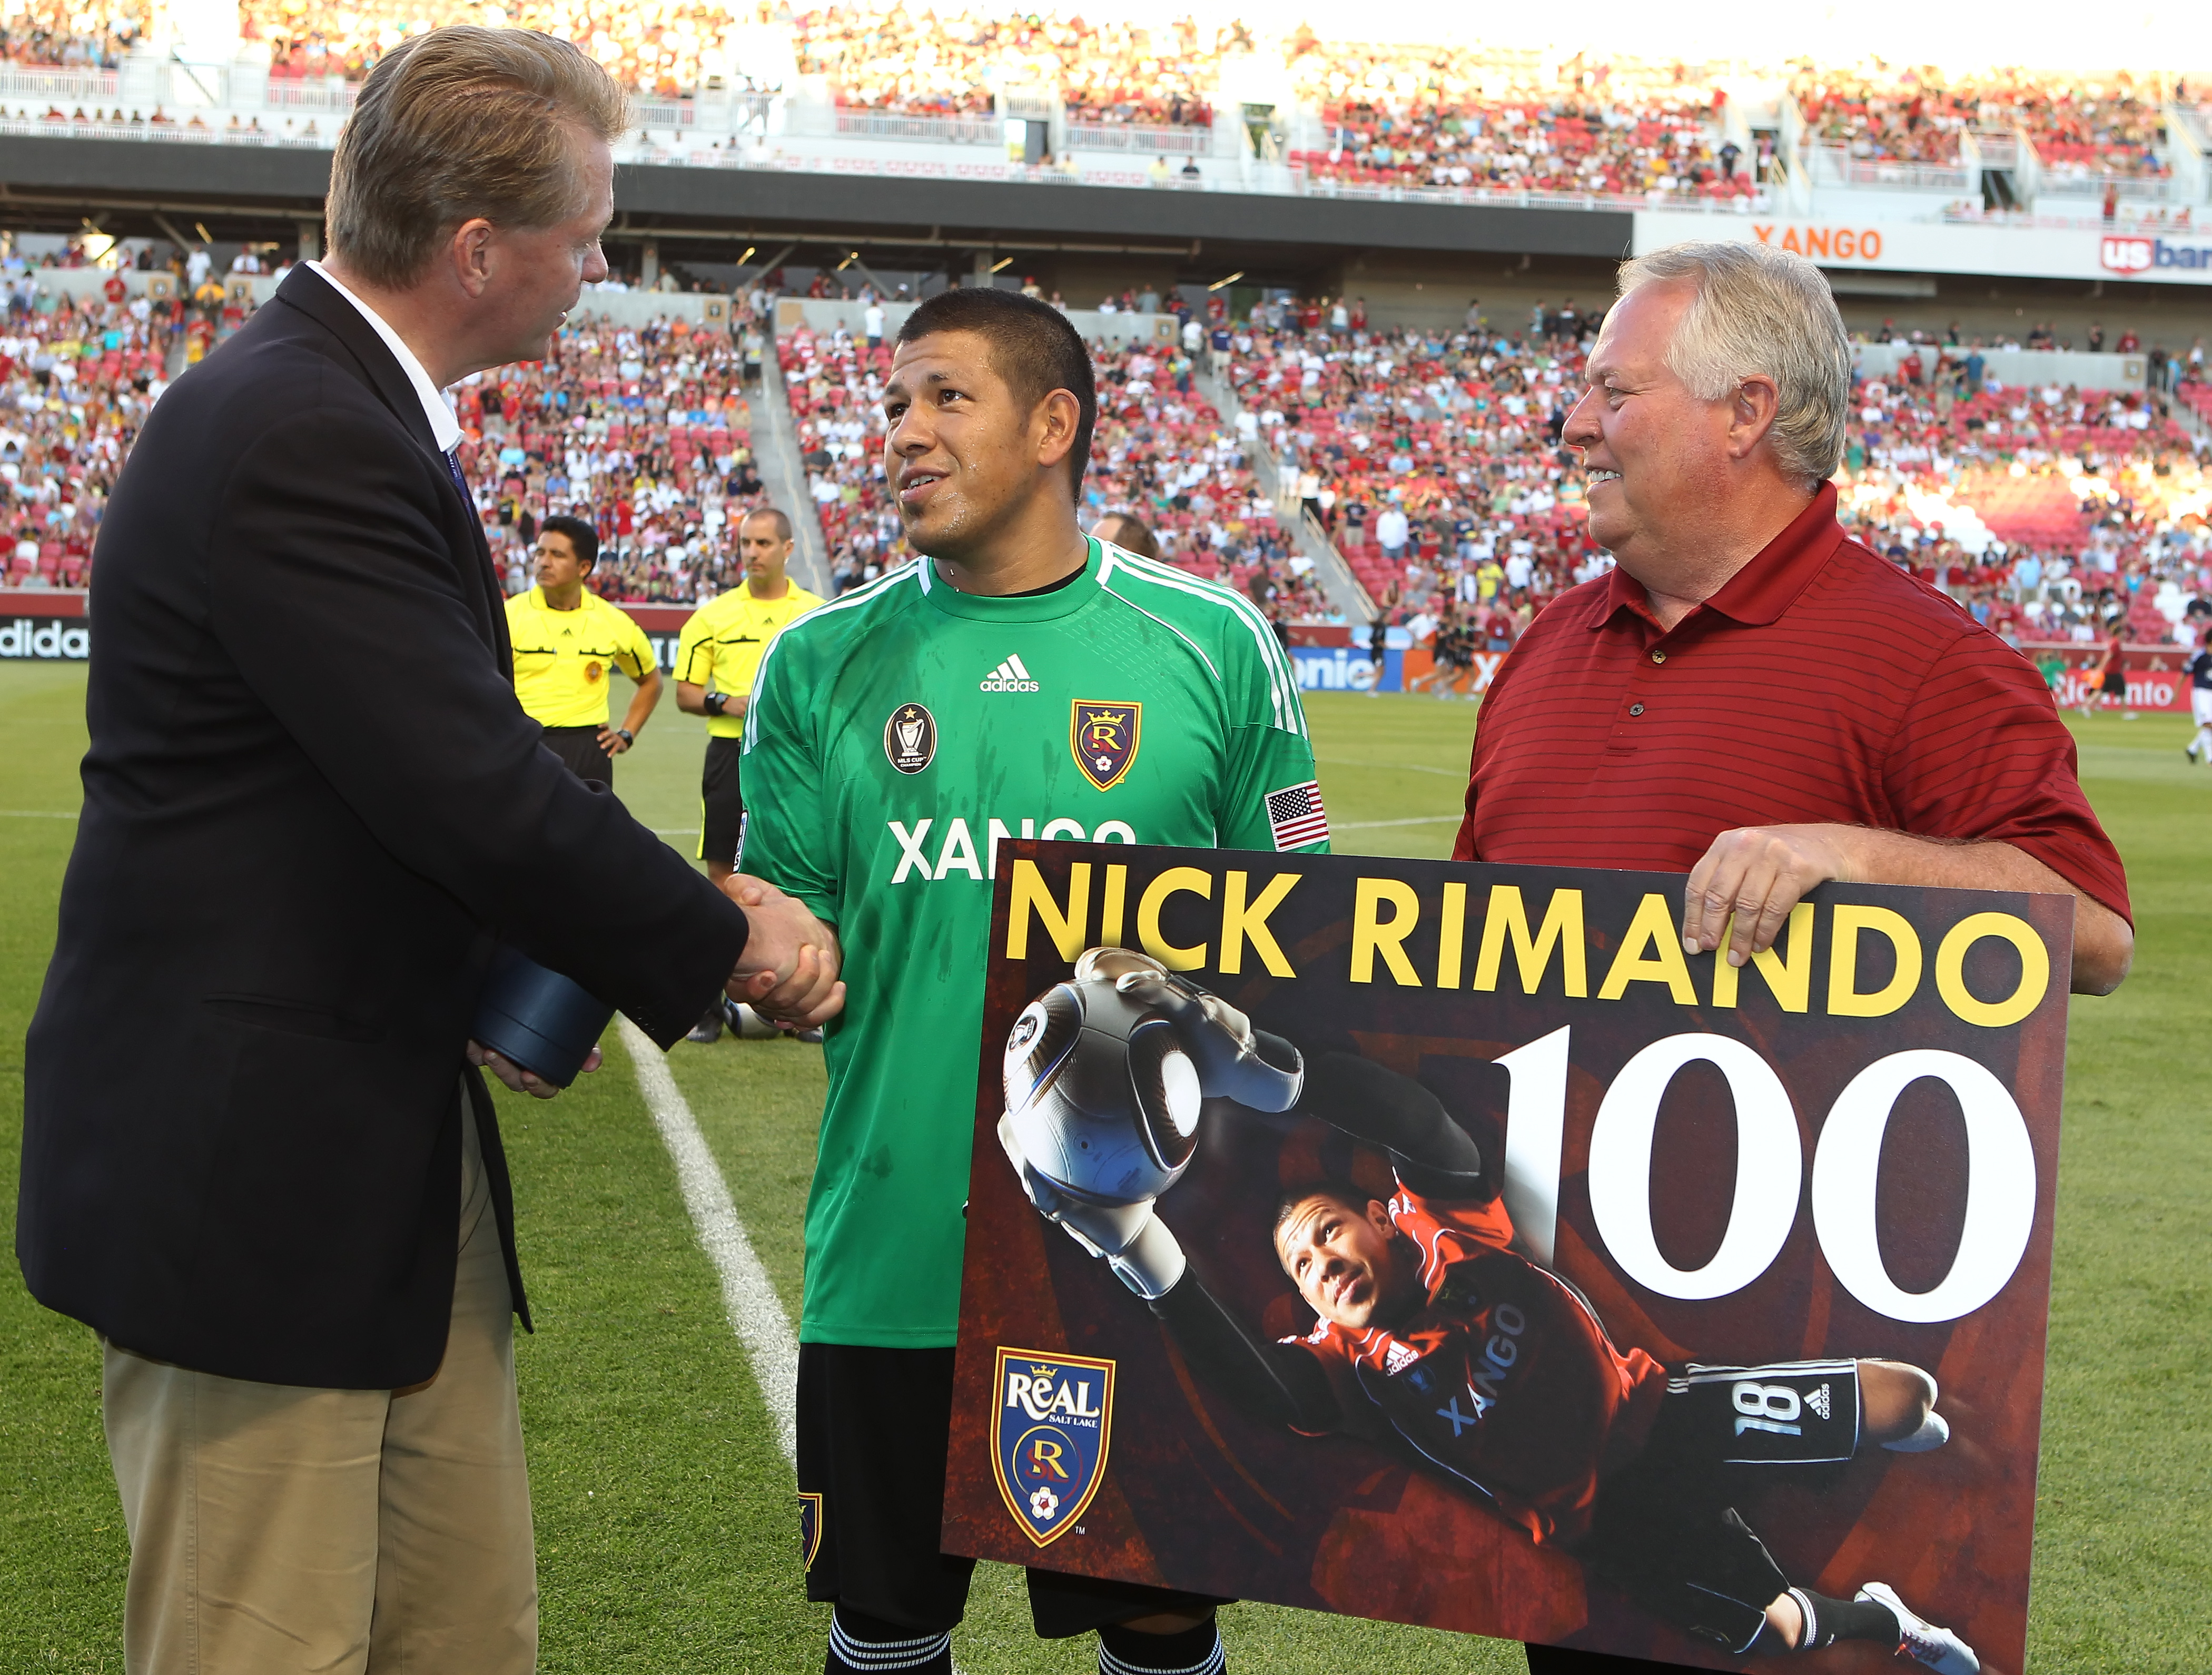 SANDY, UT - JULY 24: Owners of Real Salt Lake Dave Checketts (L) and Dell Loy Hansen (R) awards a ring to Real Goalie Nick Rimando #18 for his 100th win before a game against Chivas USA at an MLS soccer game July 24, 2010 at Rio Tinto Stadium in Sandy, Utah. (Photo by George Frey/Getty Images)